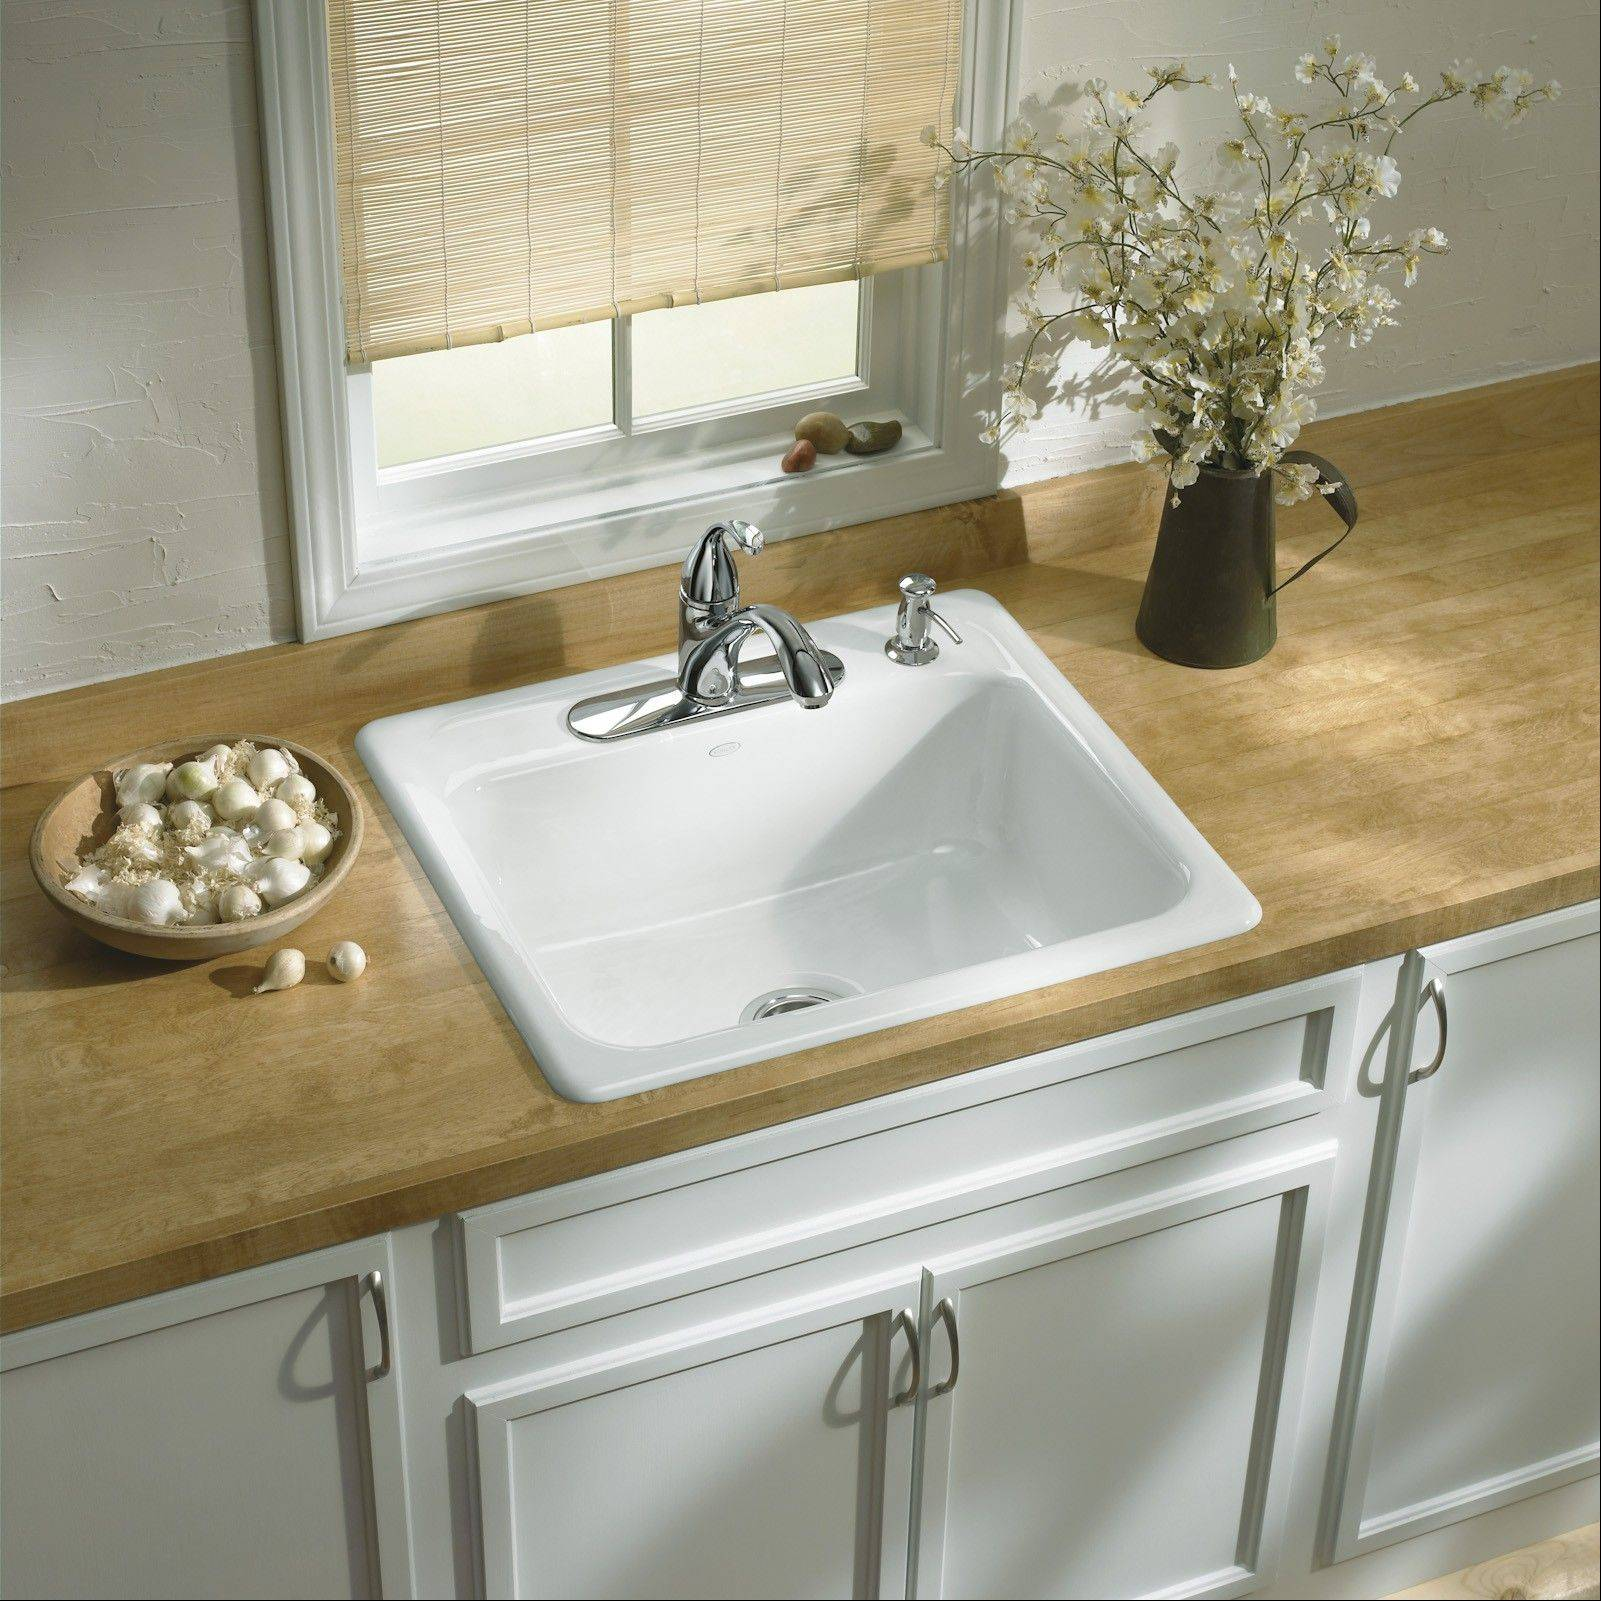 Before replacing your sink, consult with a licensed contractor certified to work with solid-surface countertops.